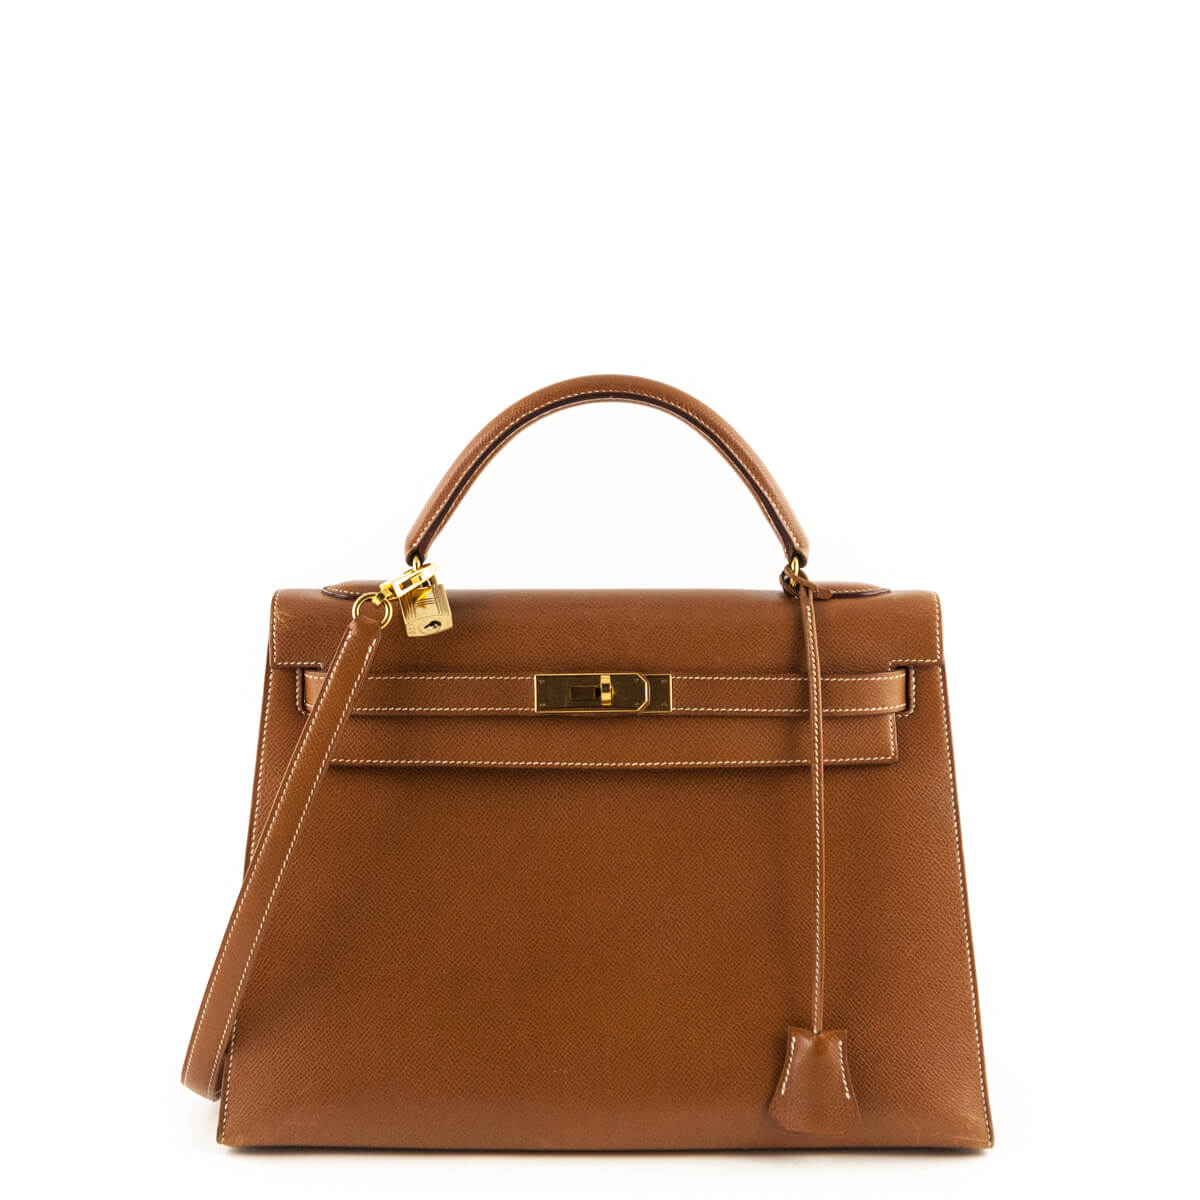 Hermes Gold Epsom Vintage Kelly Sellier 32 - LOVE that BAG - Preowned  Authentic Designer Handbags ... 5f7588ed25b38